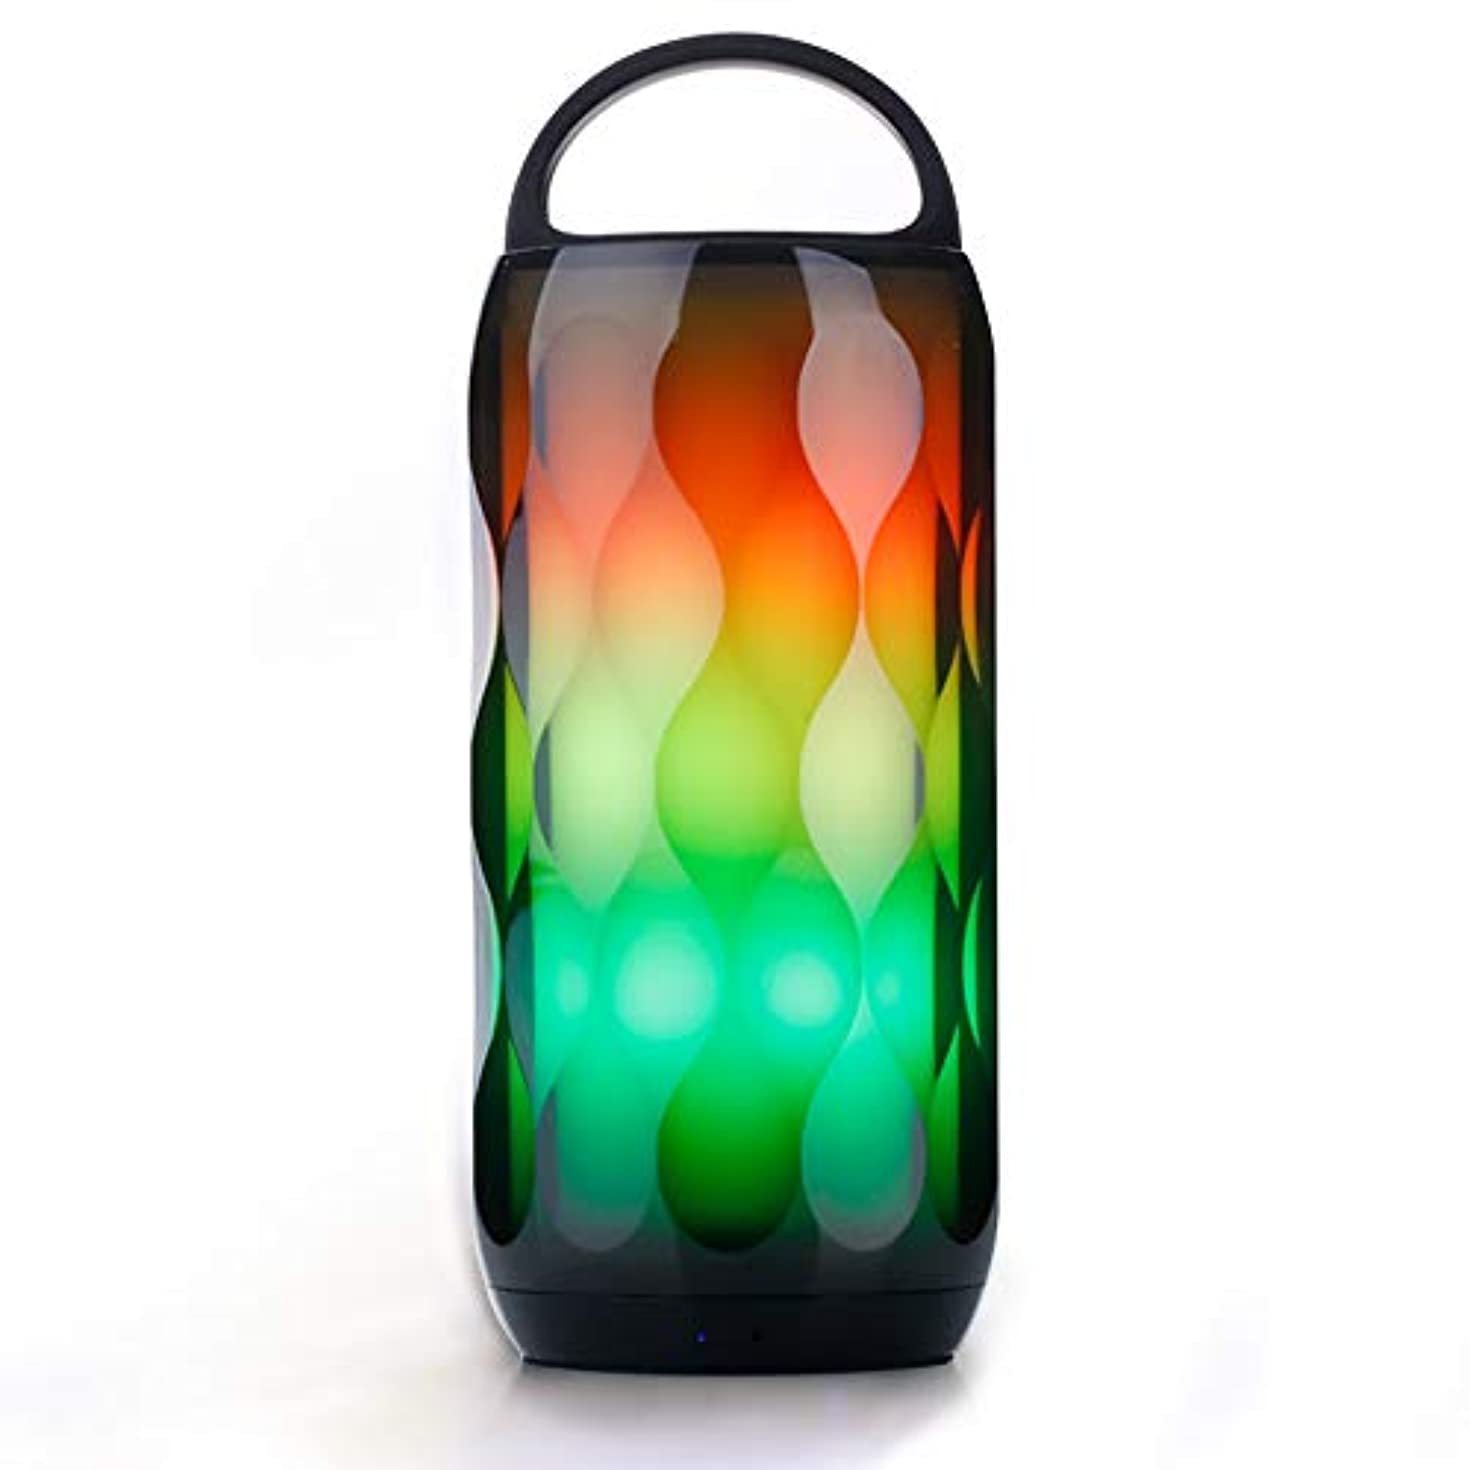 Greadio LED Bluetooth Speaker RGB Touch Night Light 5W Speaker, Portable Color Changing 6 Color Smart LED Themes Bedside Table Lamp, Speakerphone/Handsfree/MicroSD